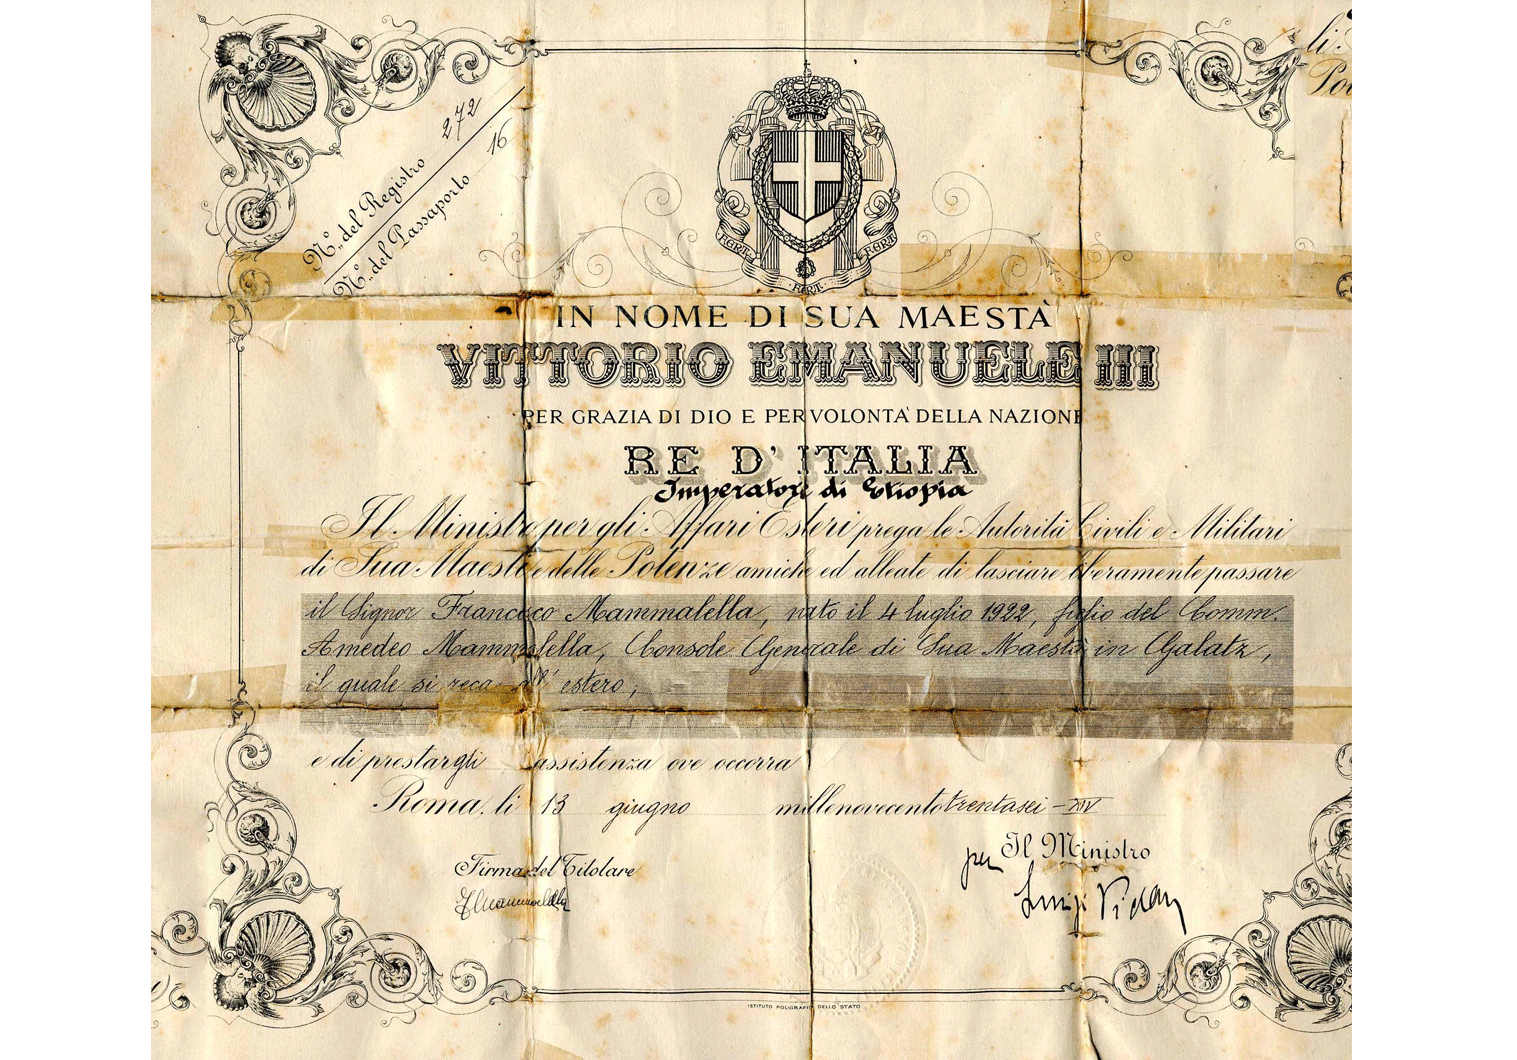 Fascist Italy special official passport